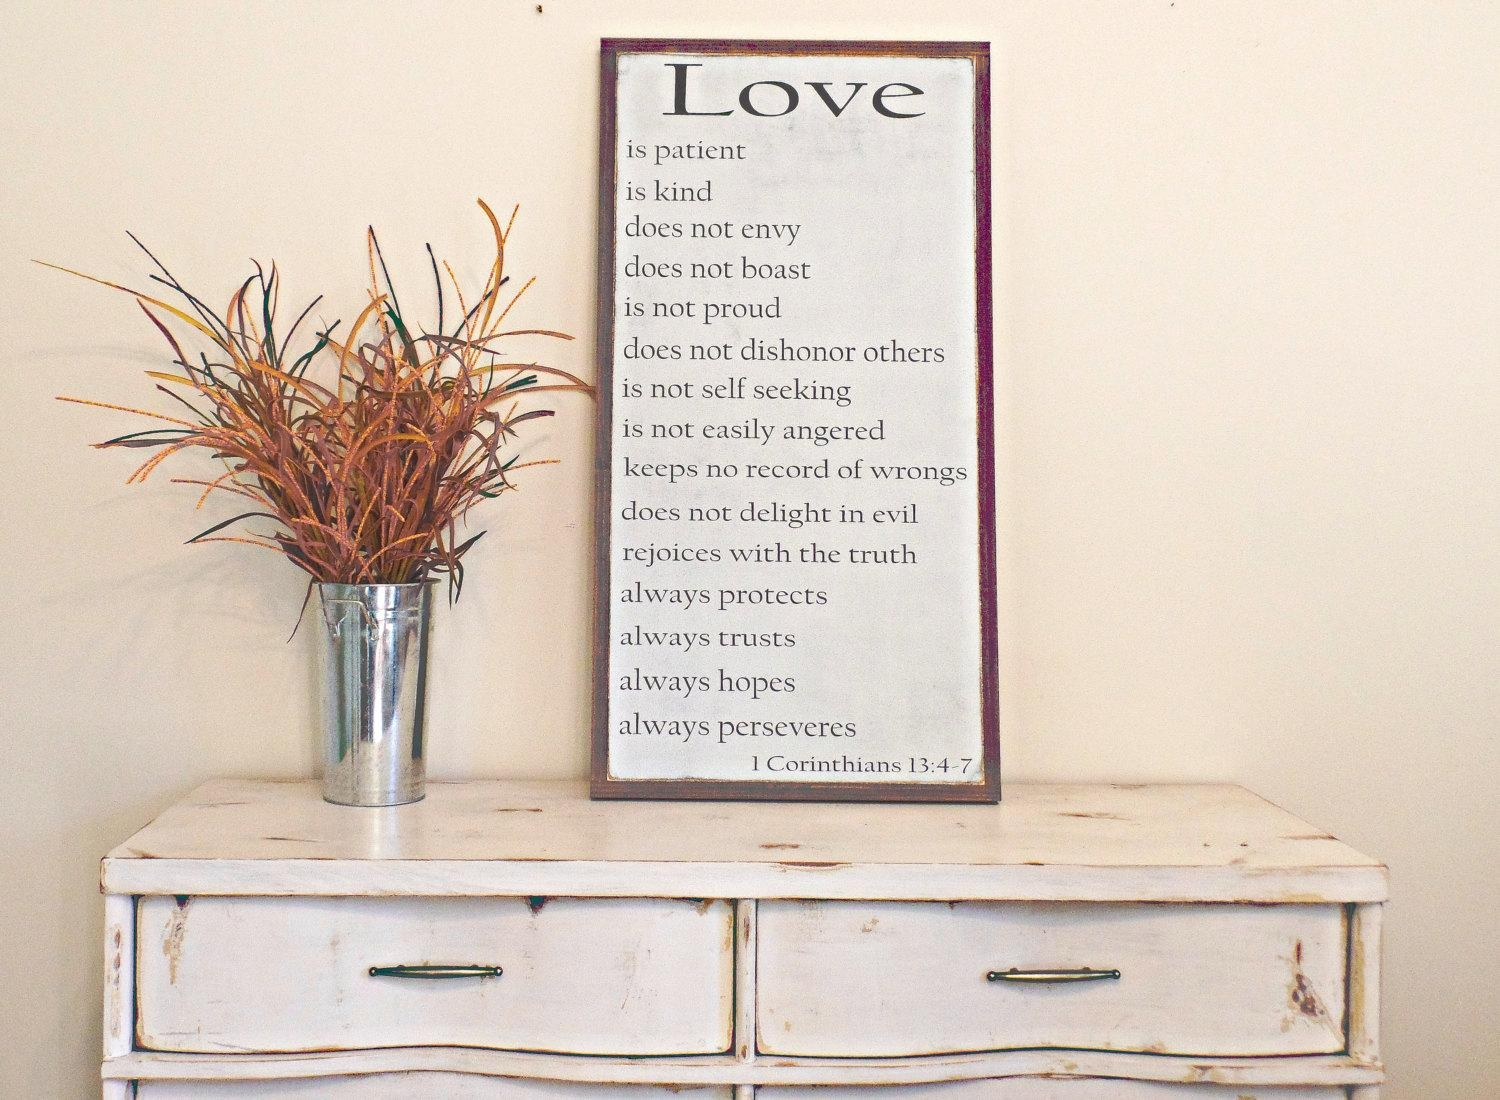 1 Corinthians 13 Wood Sign Love Wooden Sign Bible Verse Wall Throughout 1 Corinthians 13 Wall Art (Image 2 of 20)